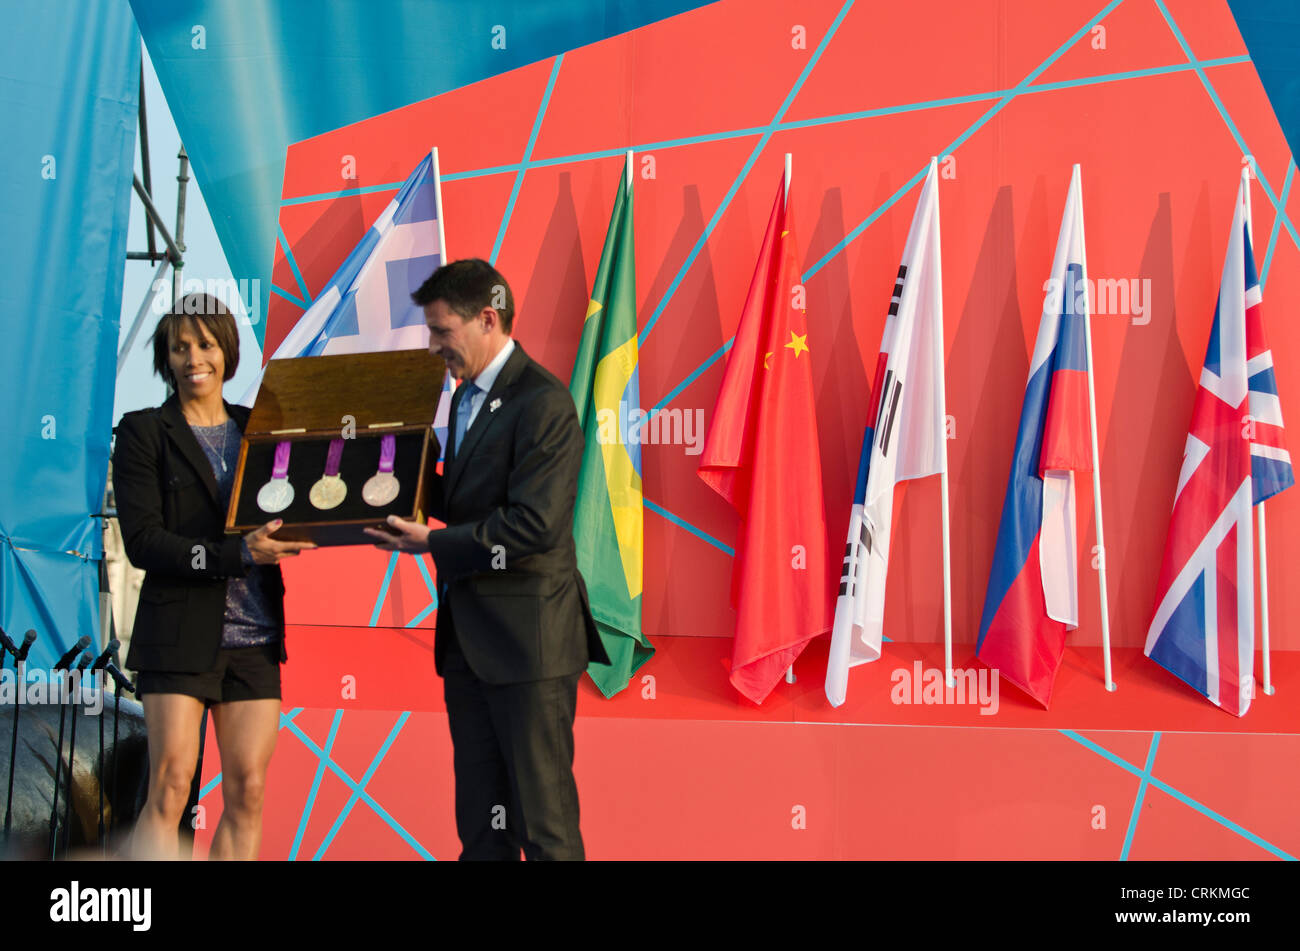 Dame Kelly Holmes and Lord Sebastian Coe holding new Olympic medals ' 1 year to go to'  London 2012 Olympics - Stock Image